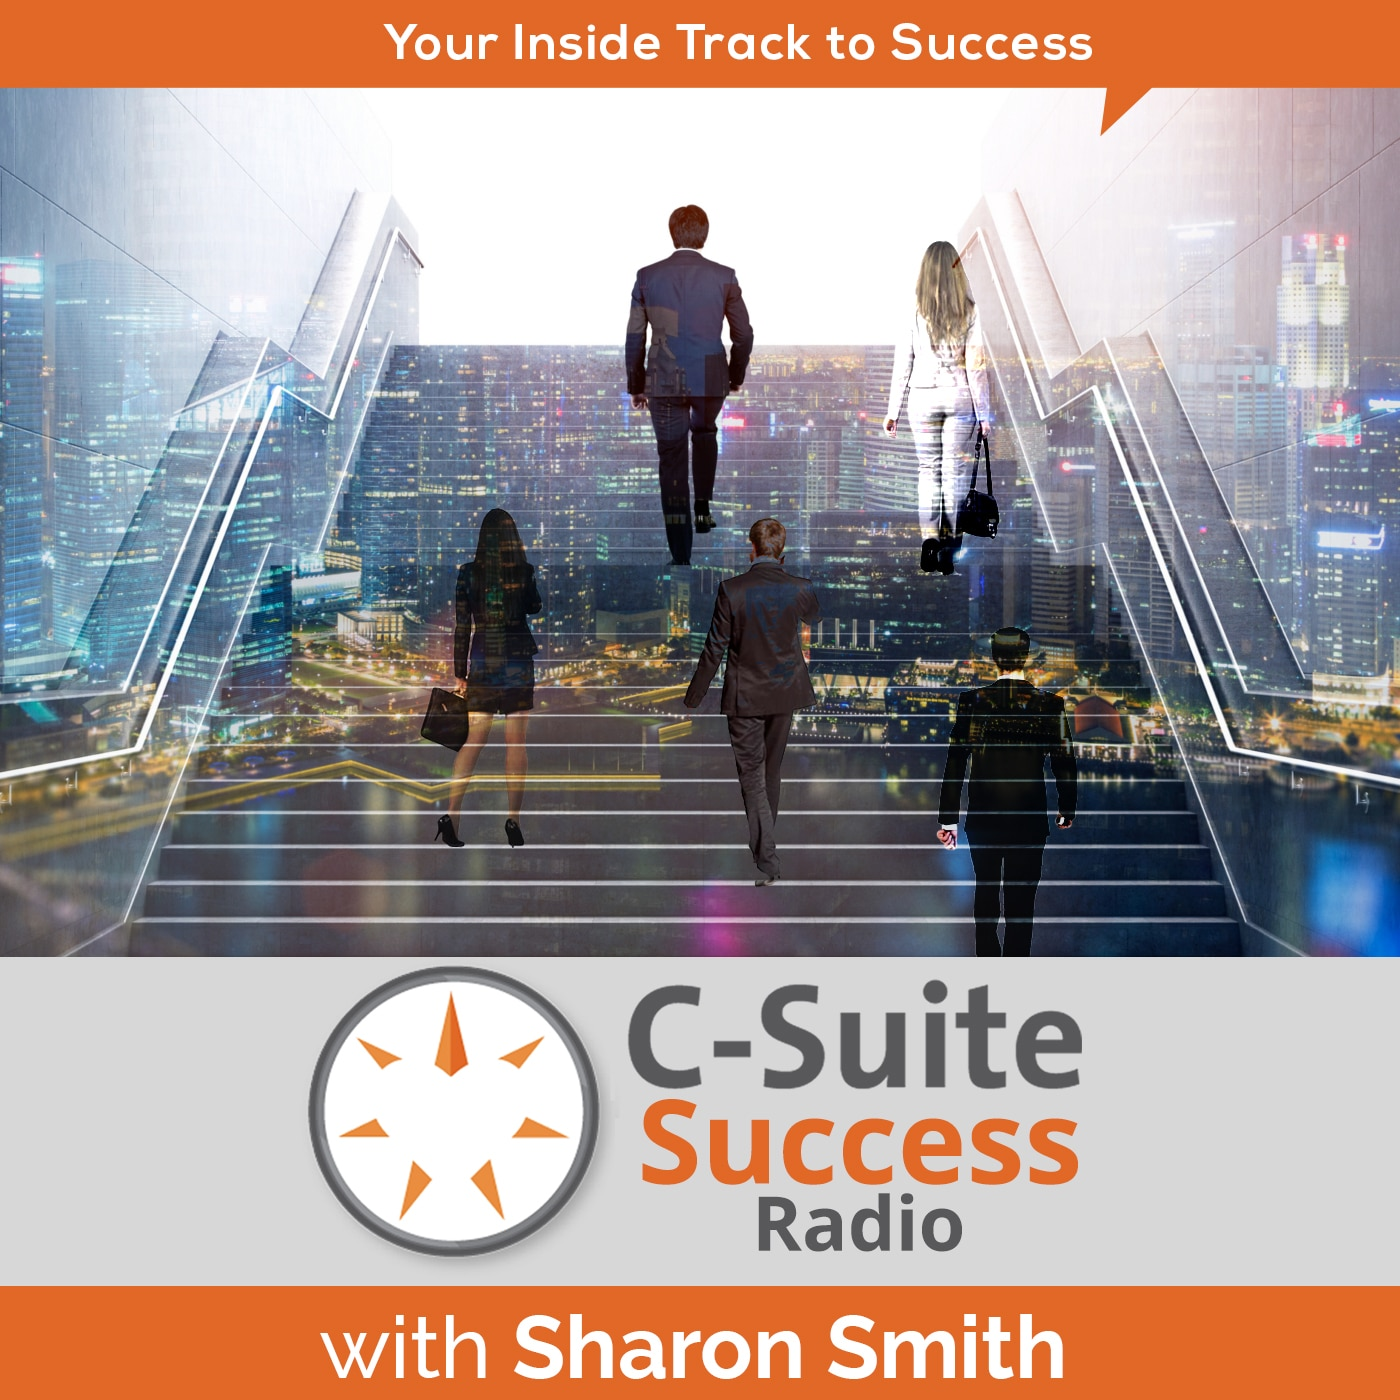 C-Suite Success Radio Interview